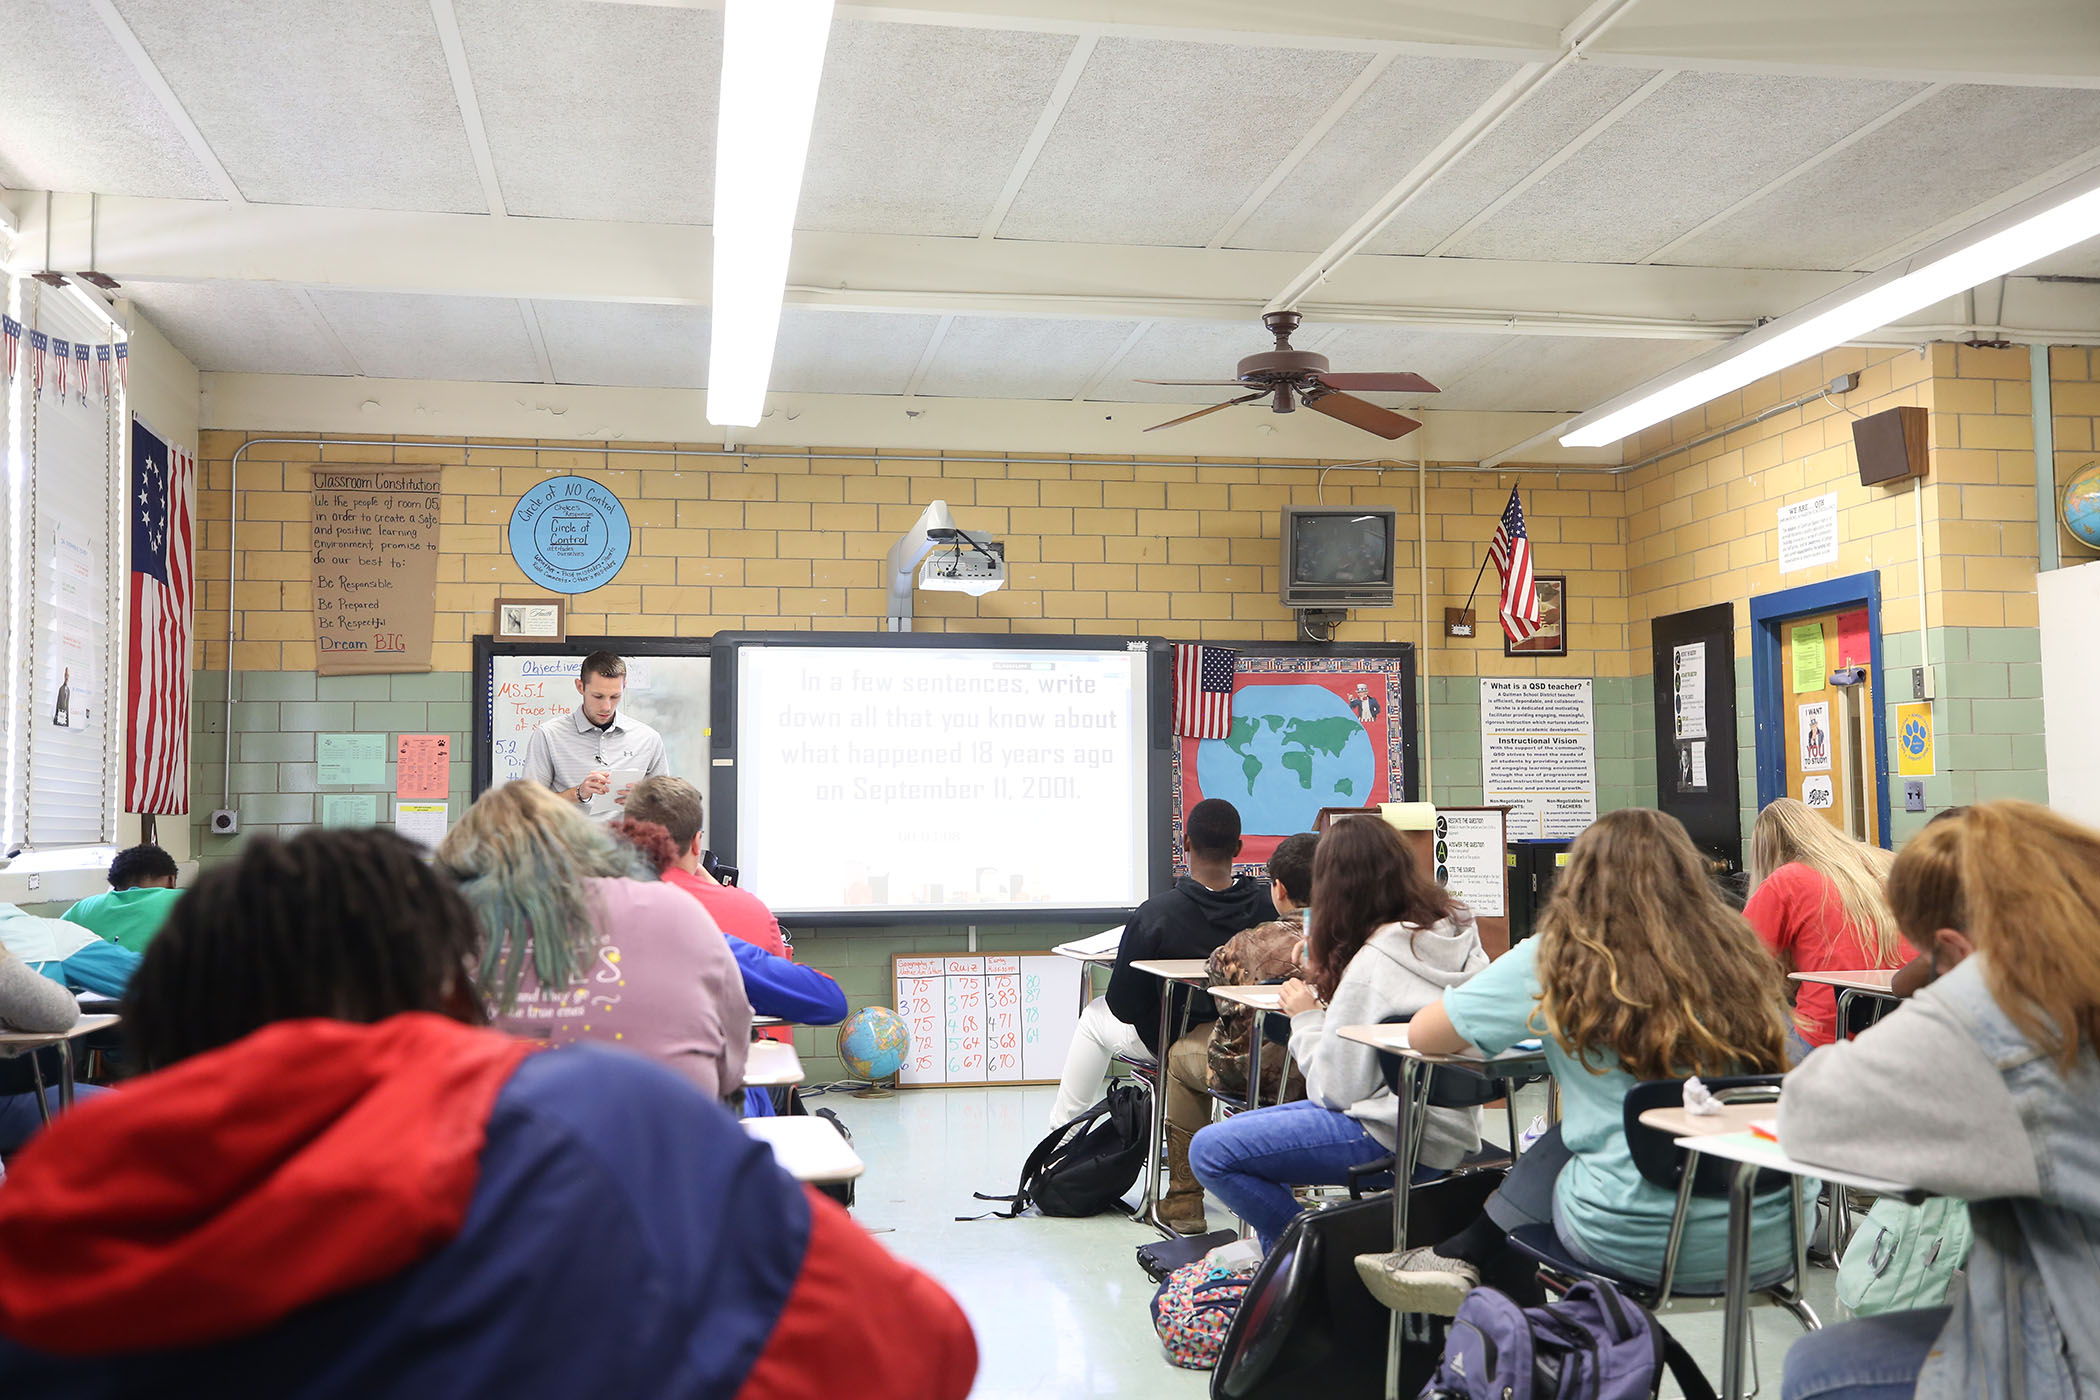 Mr. Smith has the bellringer on the promethean board when the class enters the room.